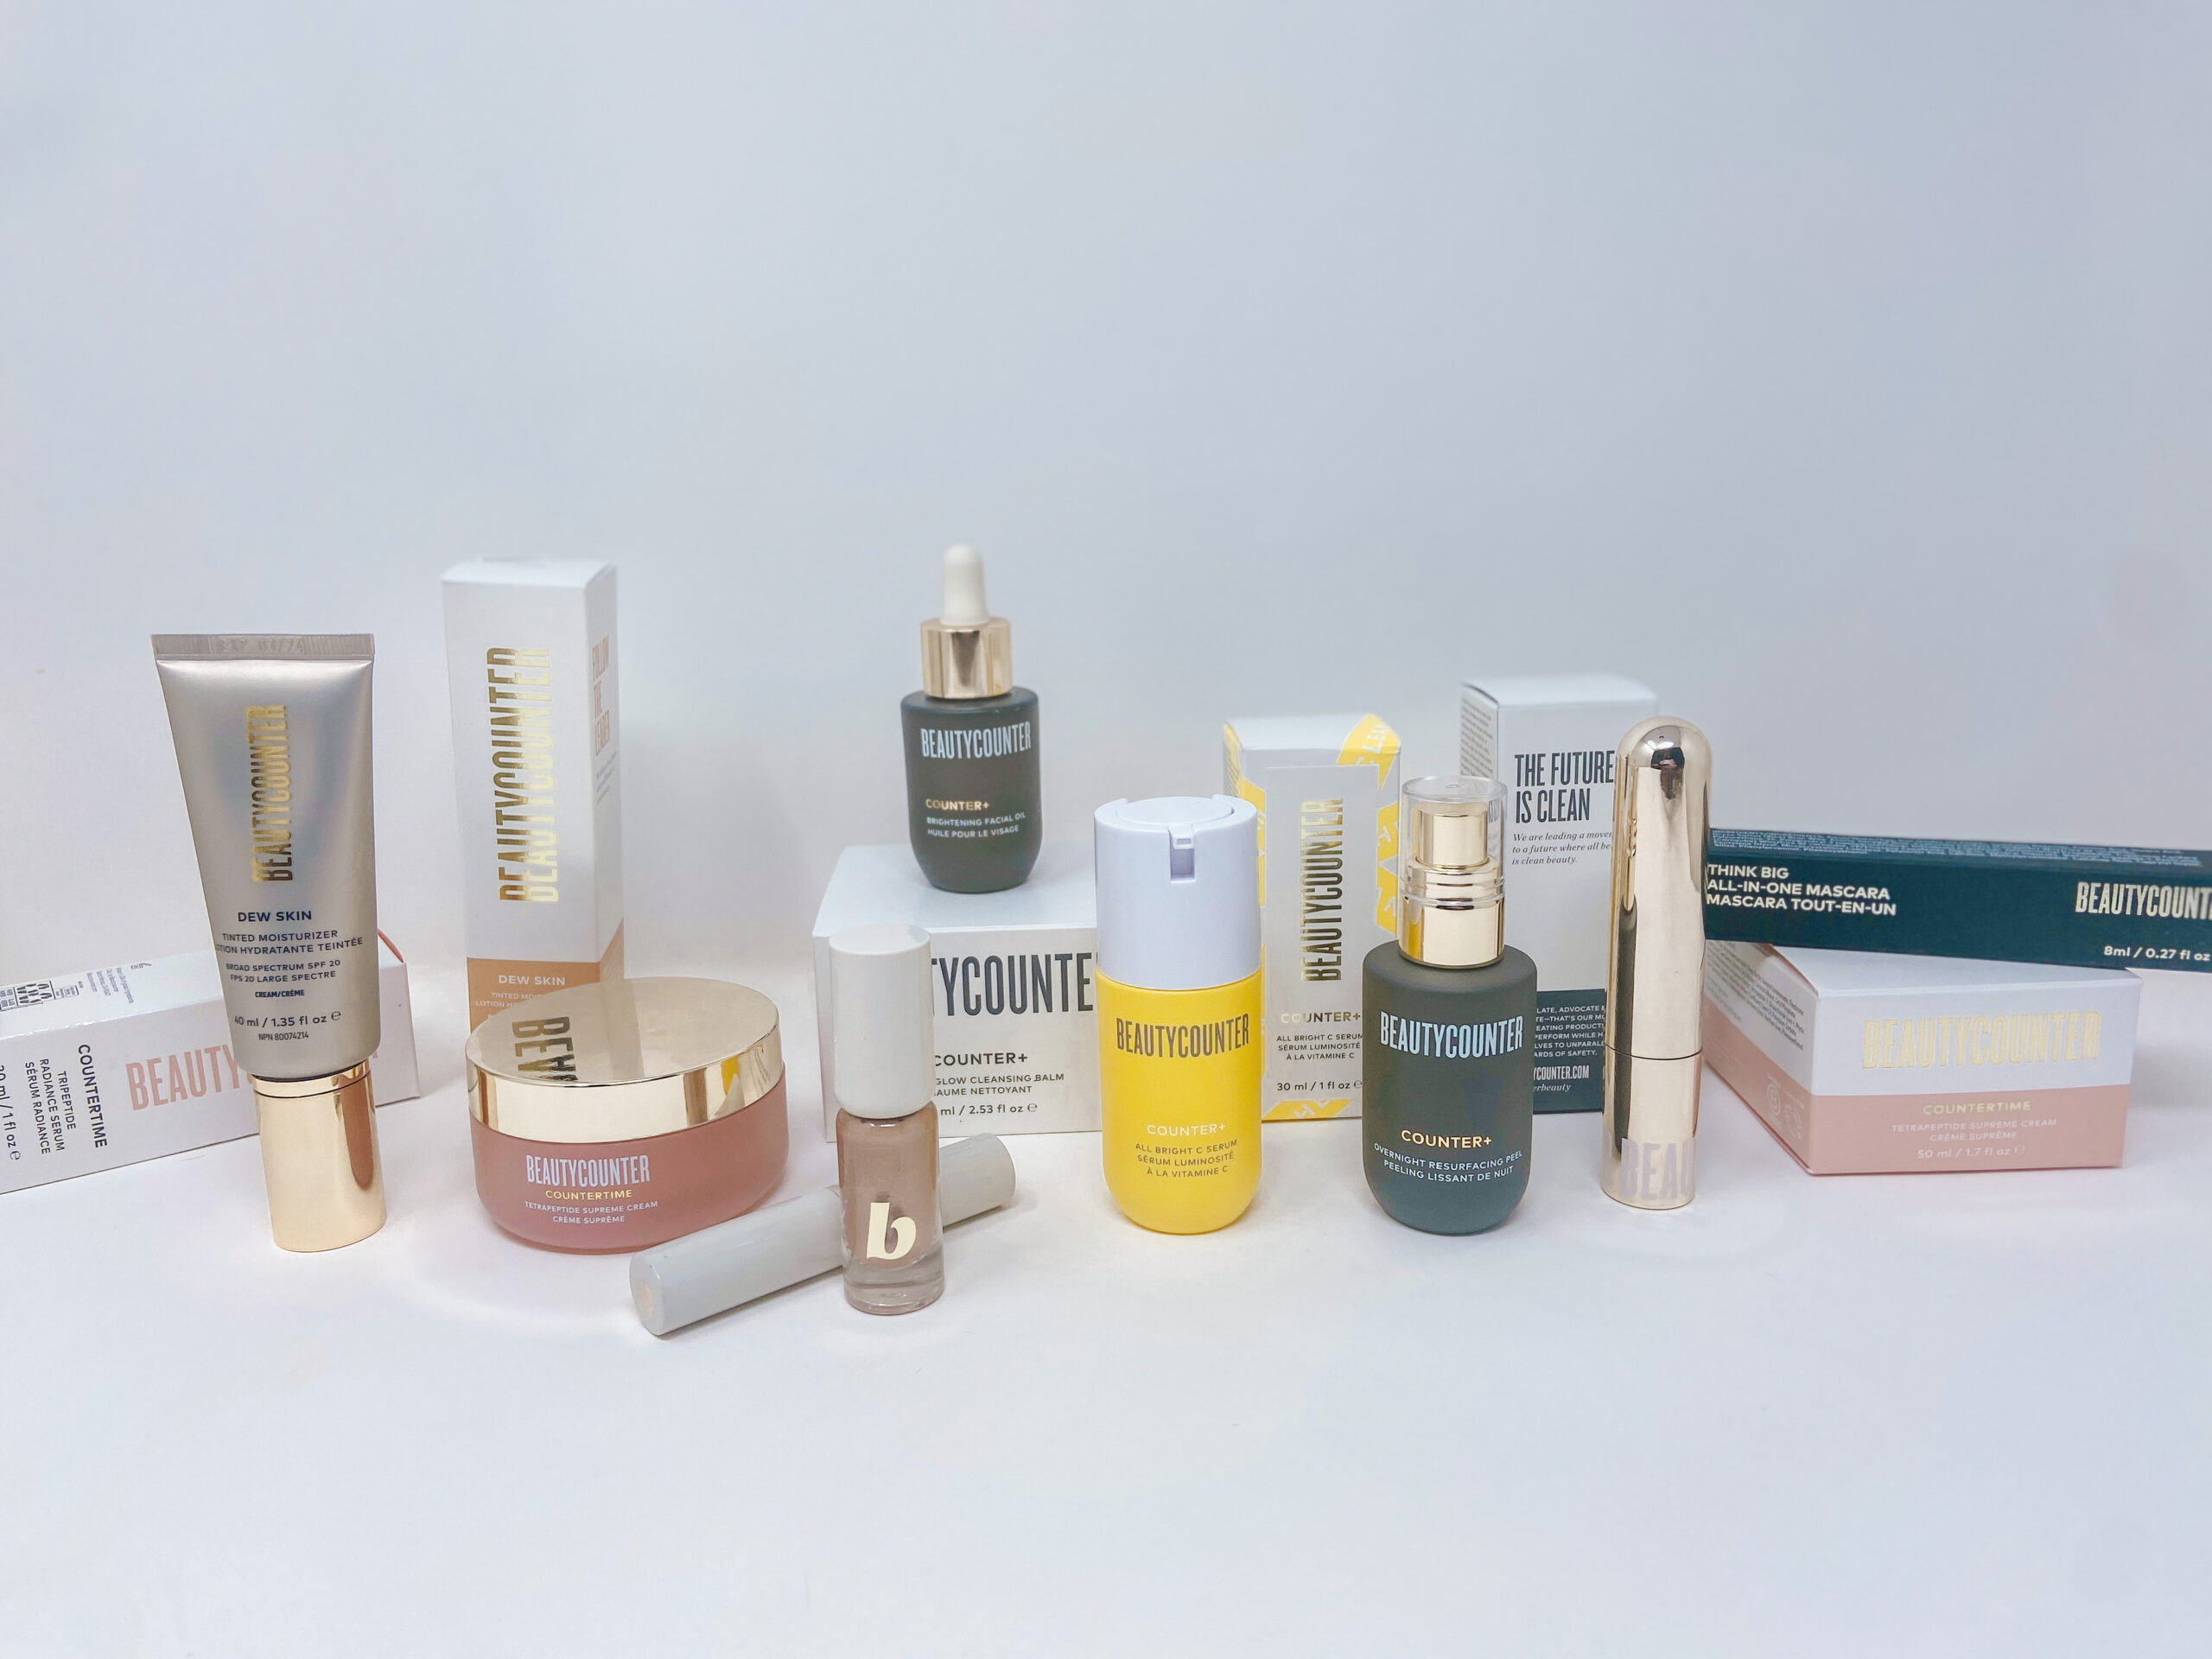 Top Beautycounter Products Fall 2021